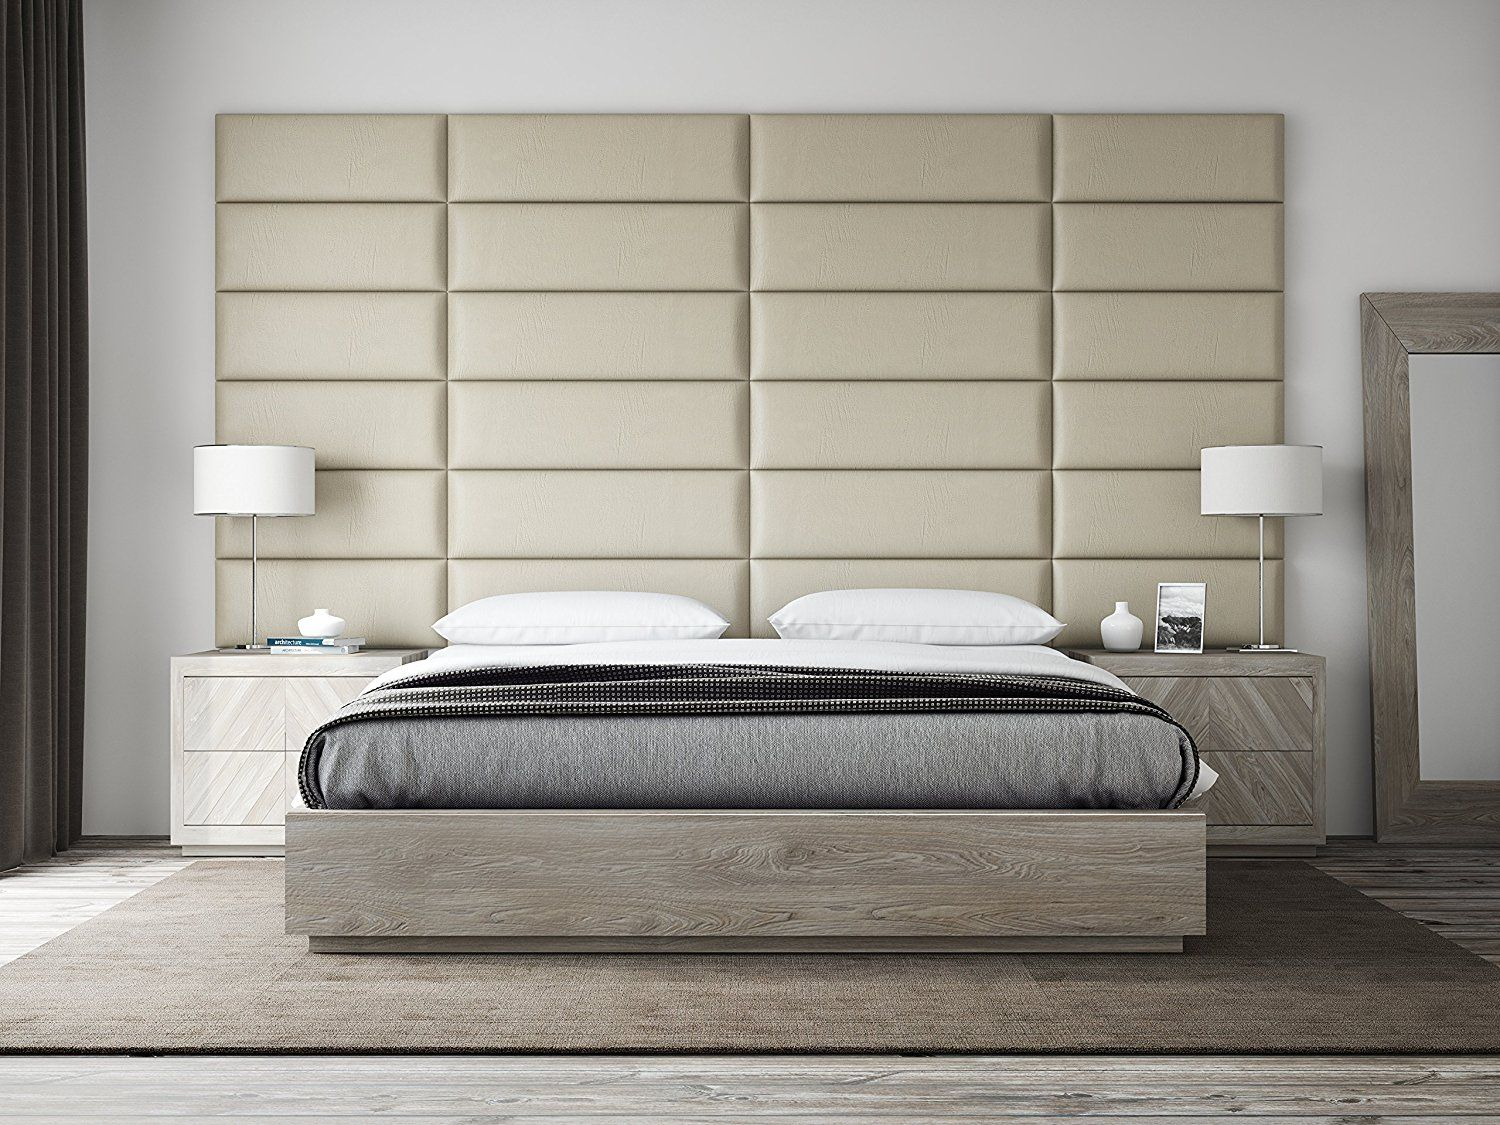 Add Character To Your Bedroom With A Custom Made Headboard Or Padded Wall Panels Like This One Upholstered Wall Panels Upholstered Walls Upholstered Headboard